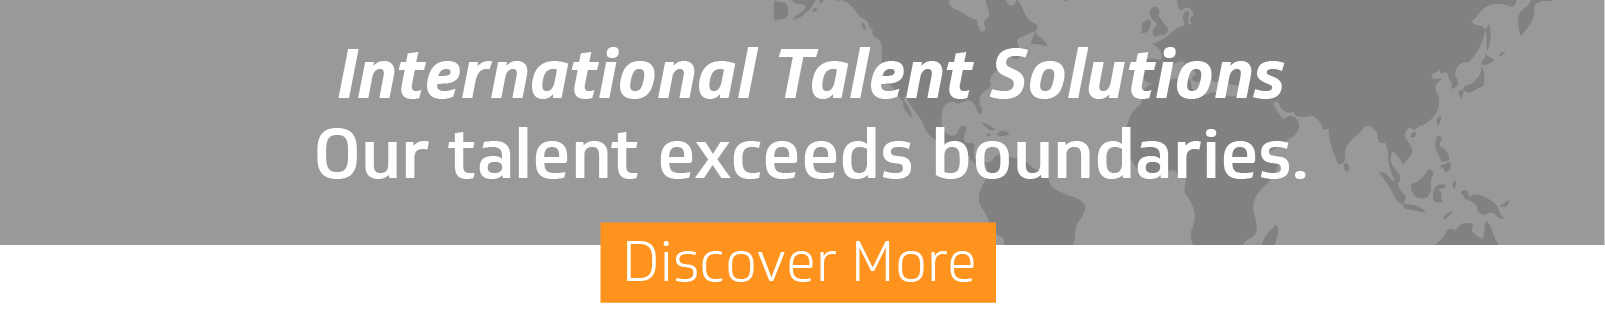 View our international talent solutions!